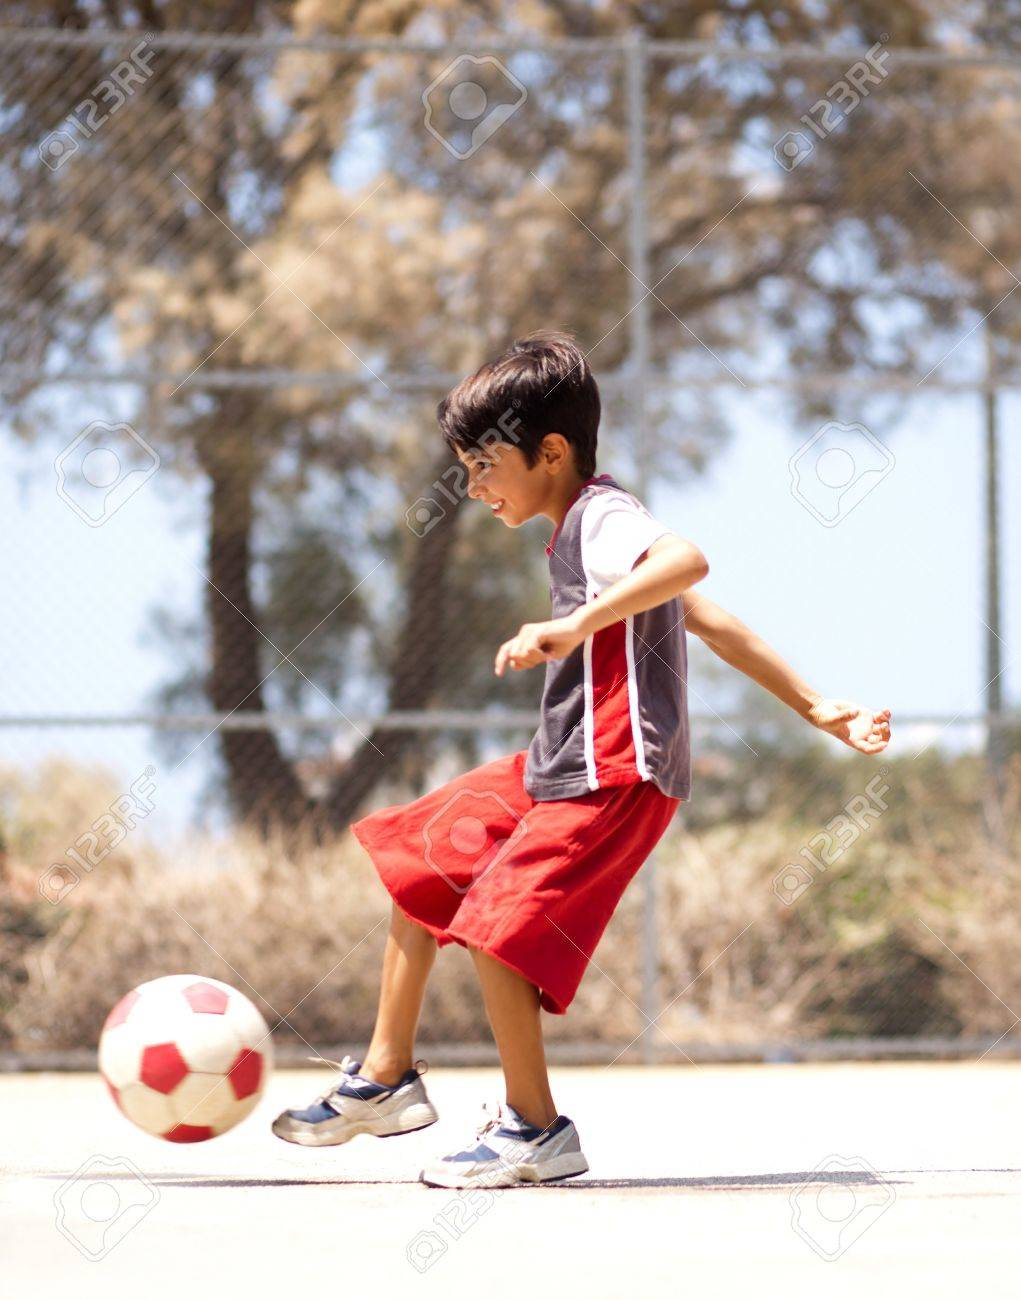 Young kid in action enjoying soccer, outdoors - 9795952